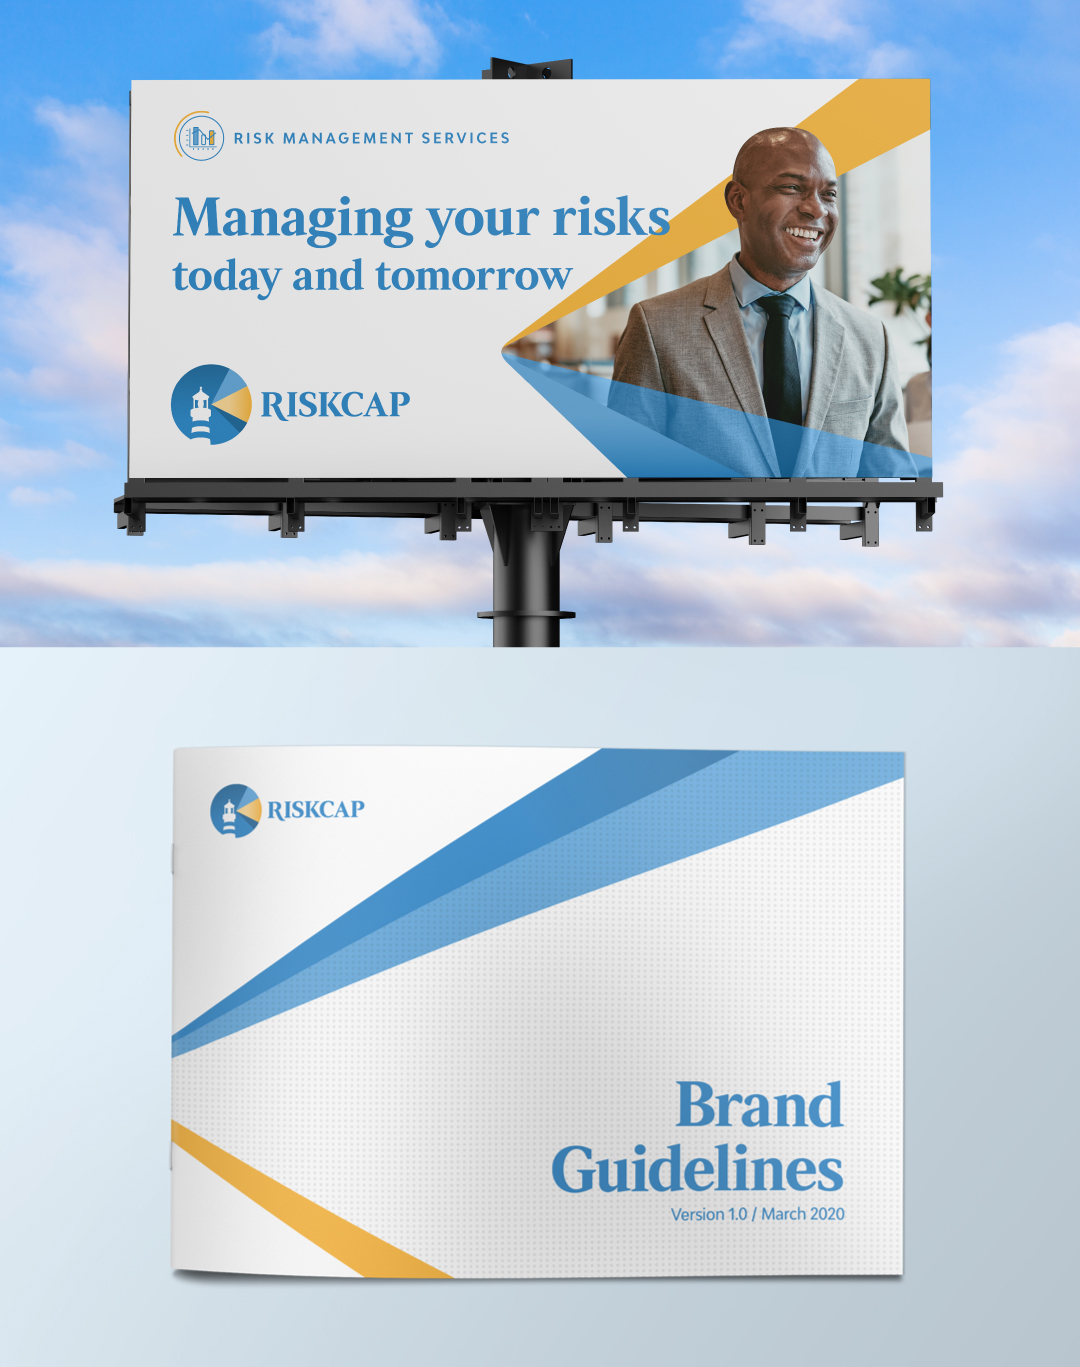 RiskCap billboard mockup and guidelines cover